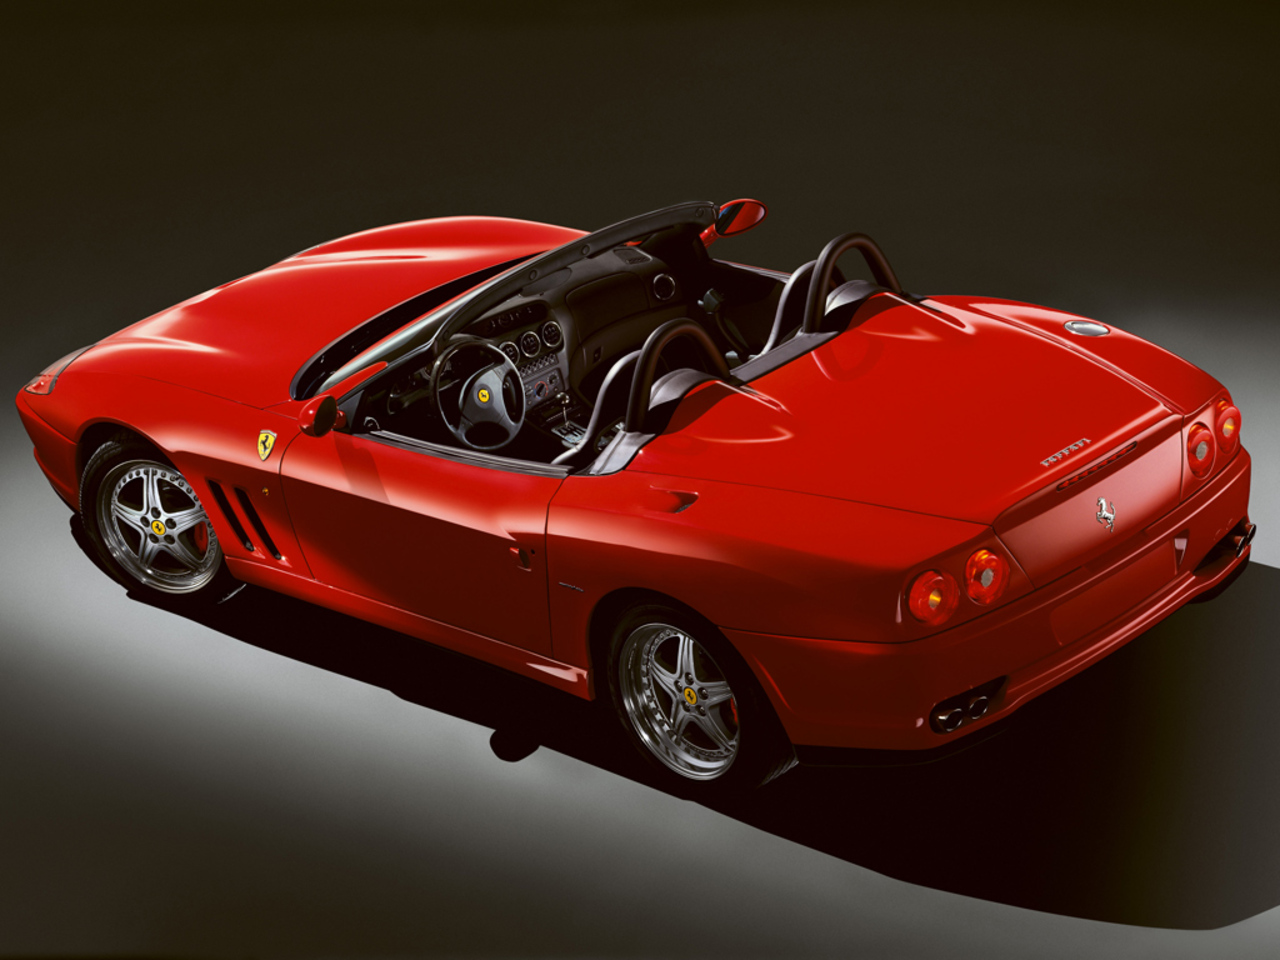 550 Barchetta Pininfarina: Upper view